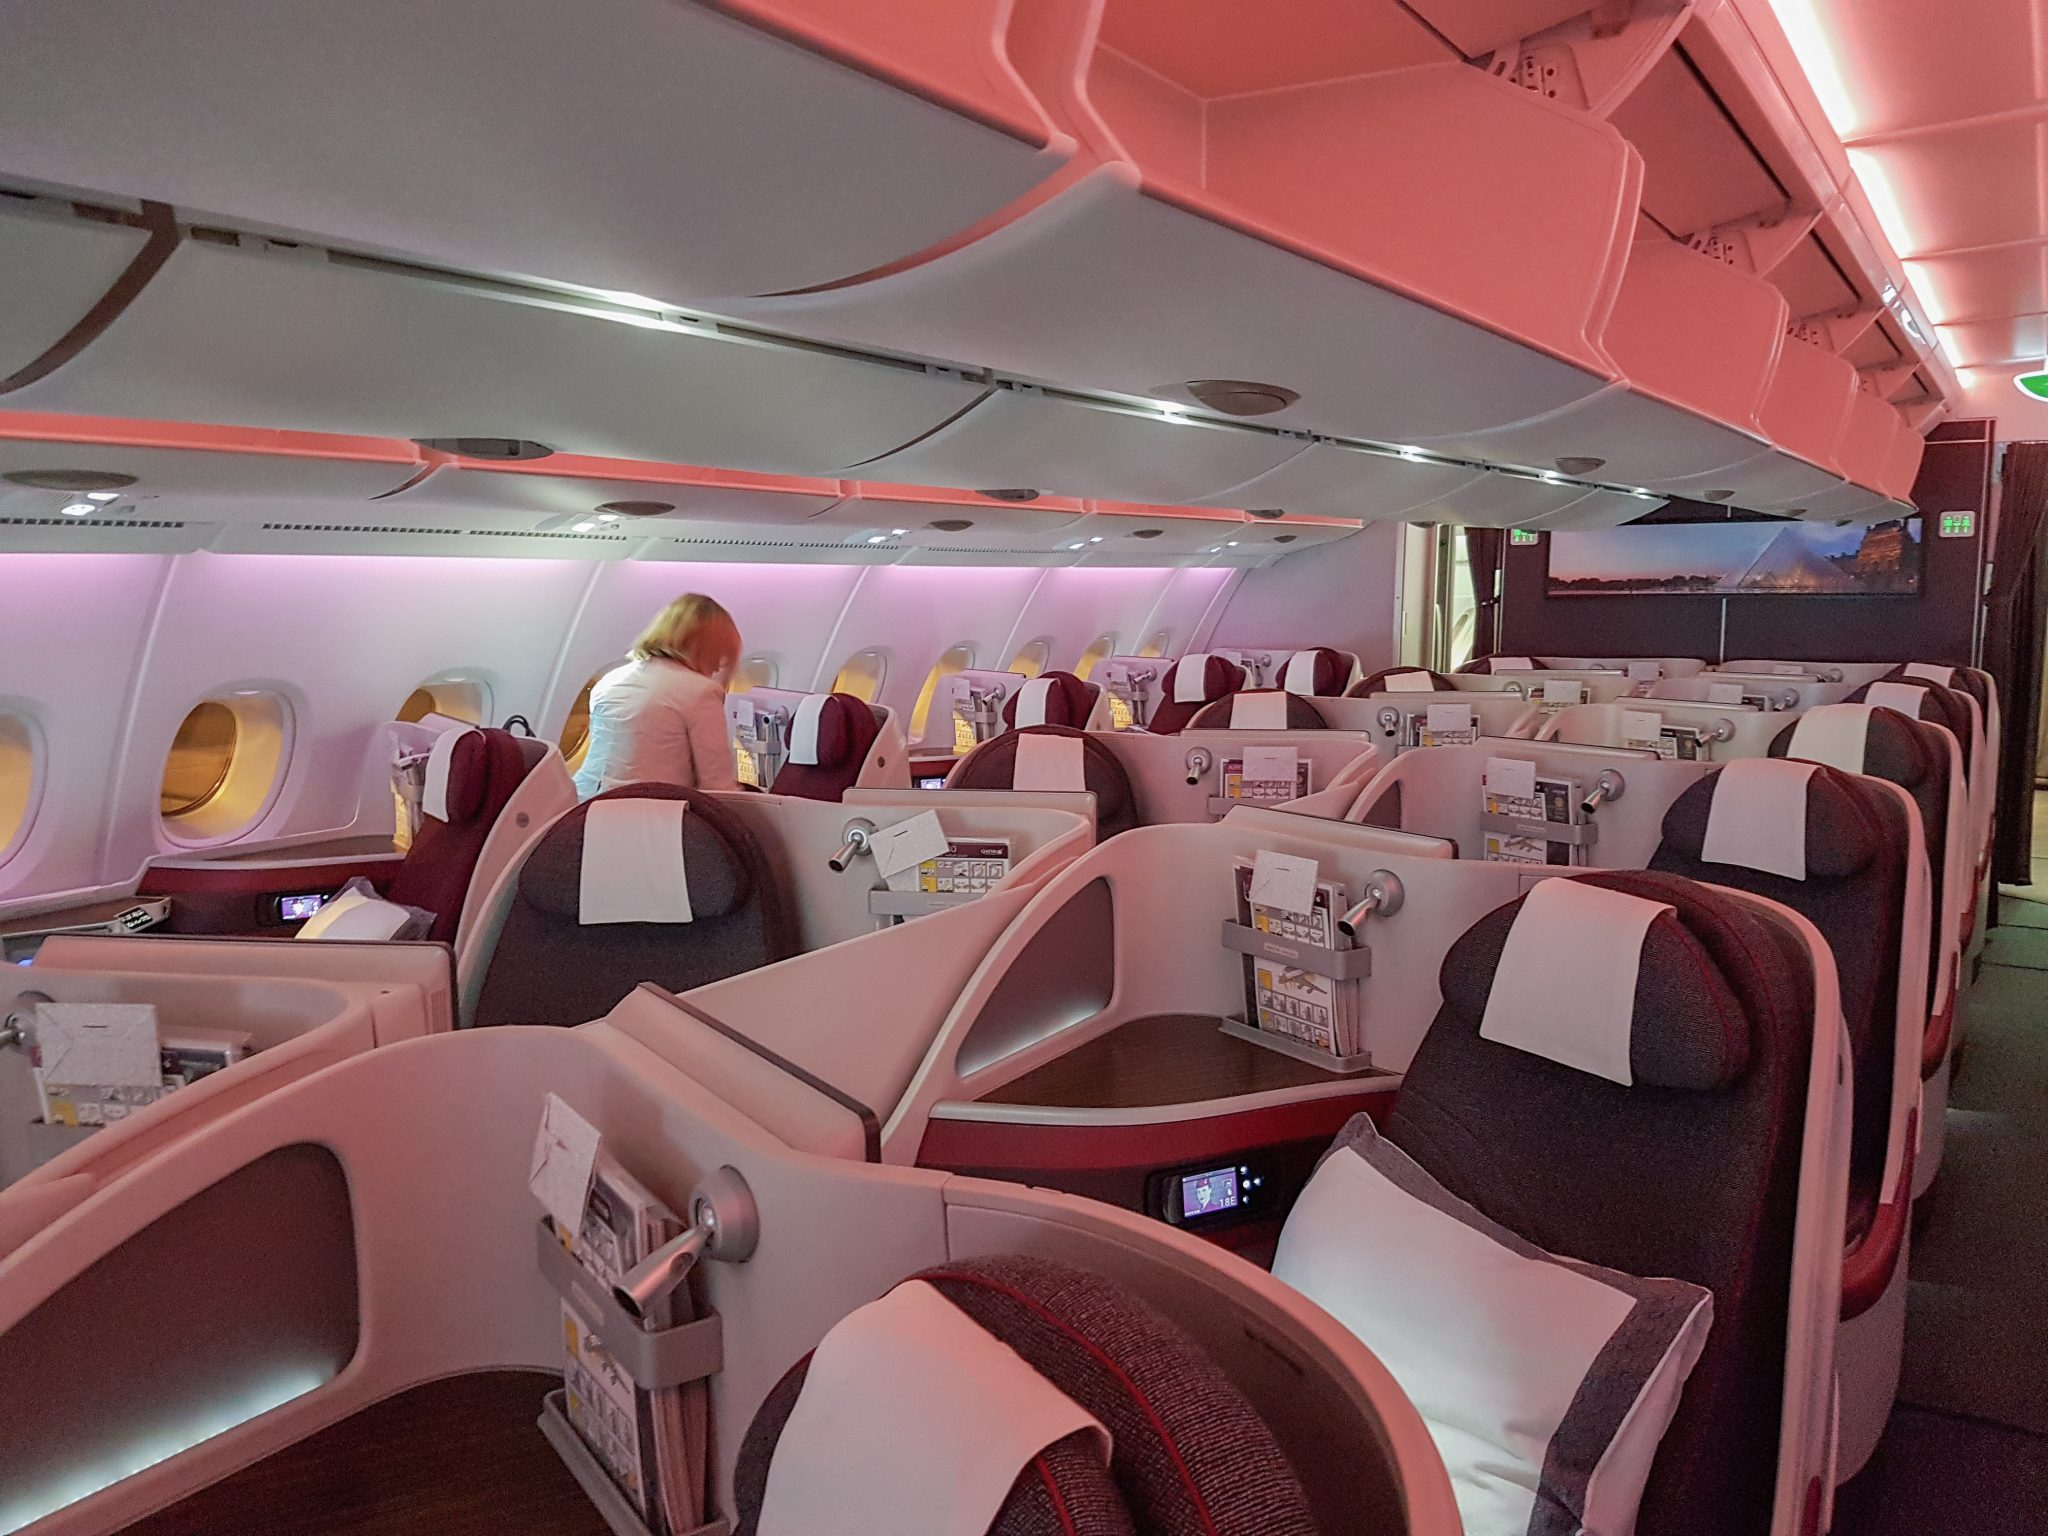 QRJ DOH SYD 4 - REVIEW - Qatar Airways : Business Class - A350 - Tokyo (HND) to Doha (DOH)